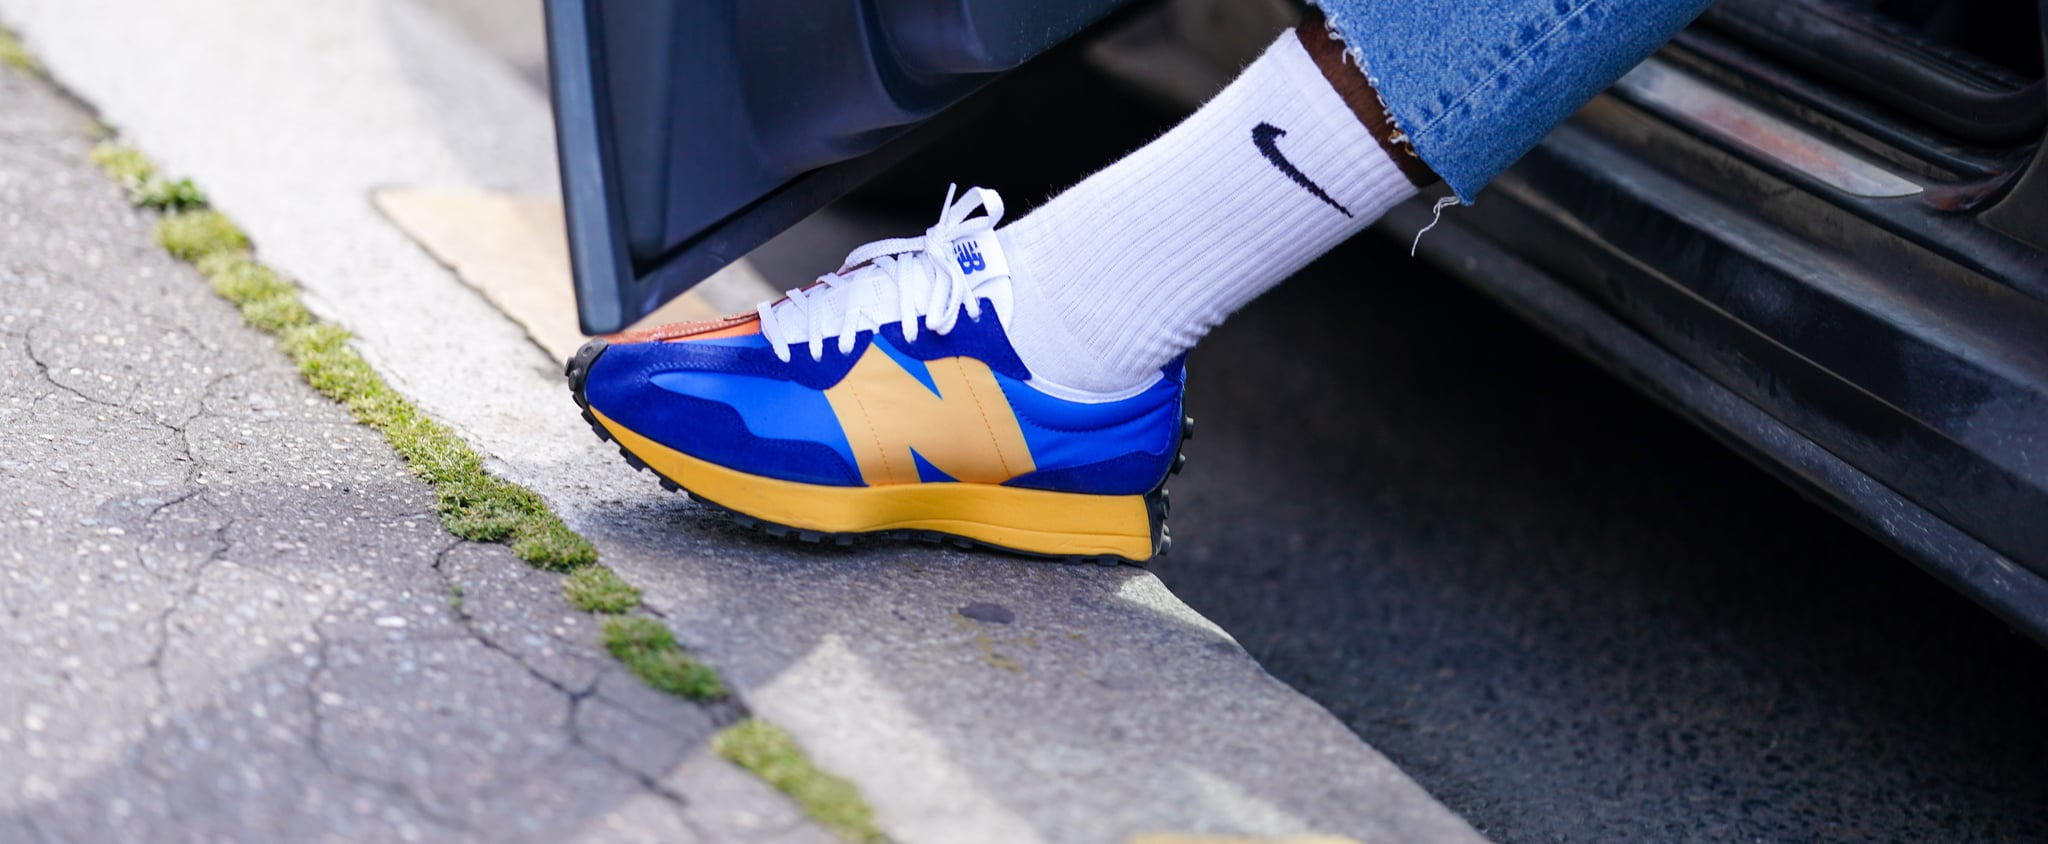 5 Sneaker Trends to Shop For Spring 2021